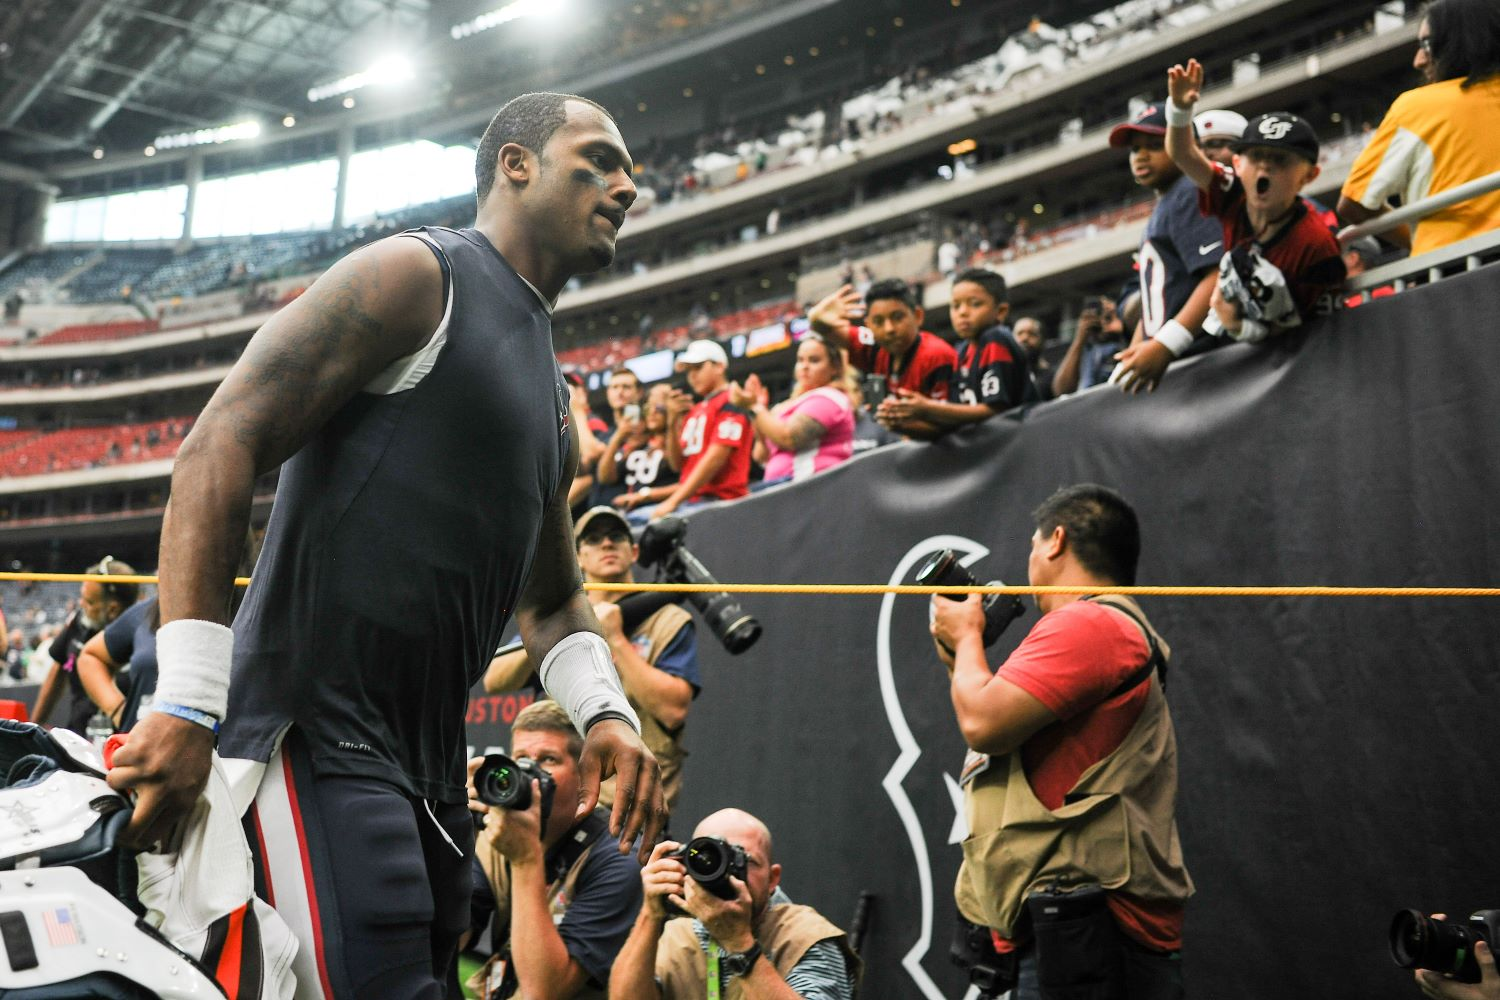 Disgruntled franchise QB Deshaun Watson sent an ominous tweet on Friday that should send chills down the spines of Houston Texans fans.